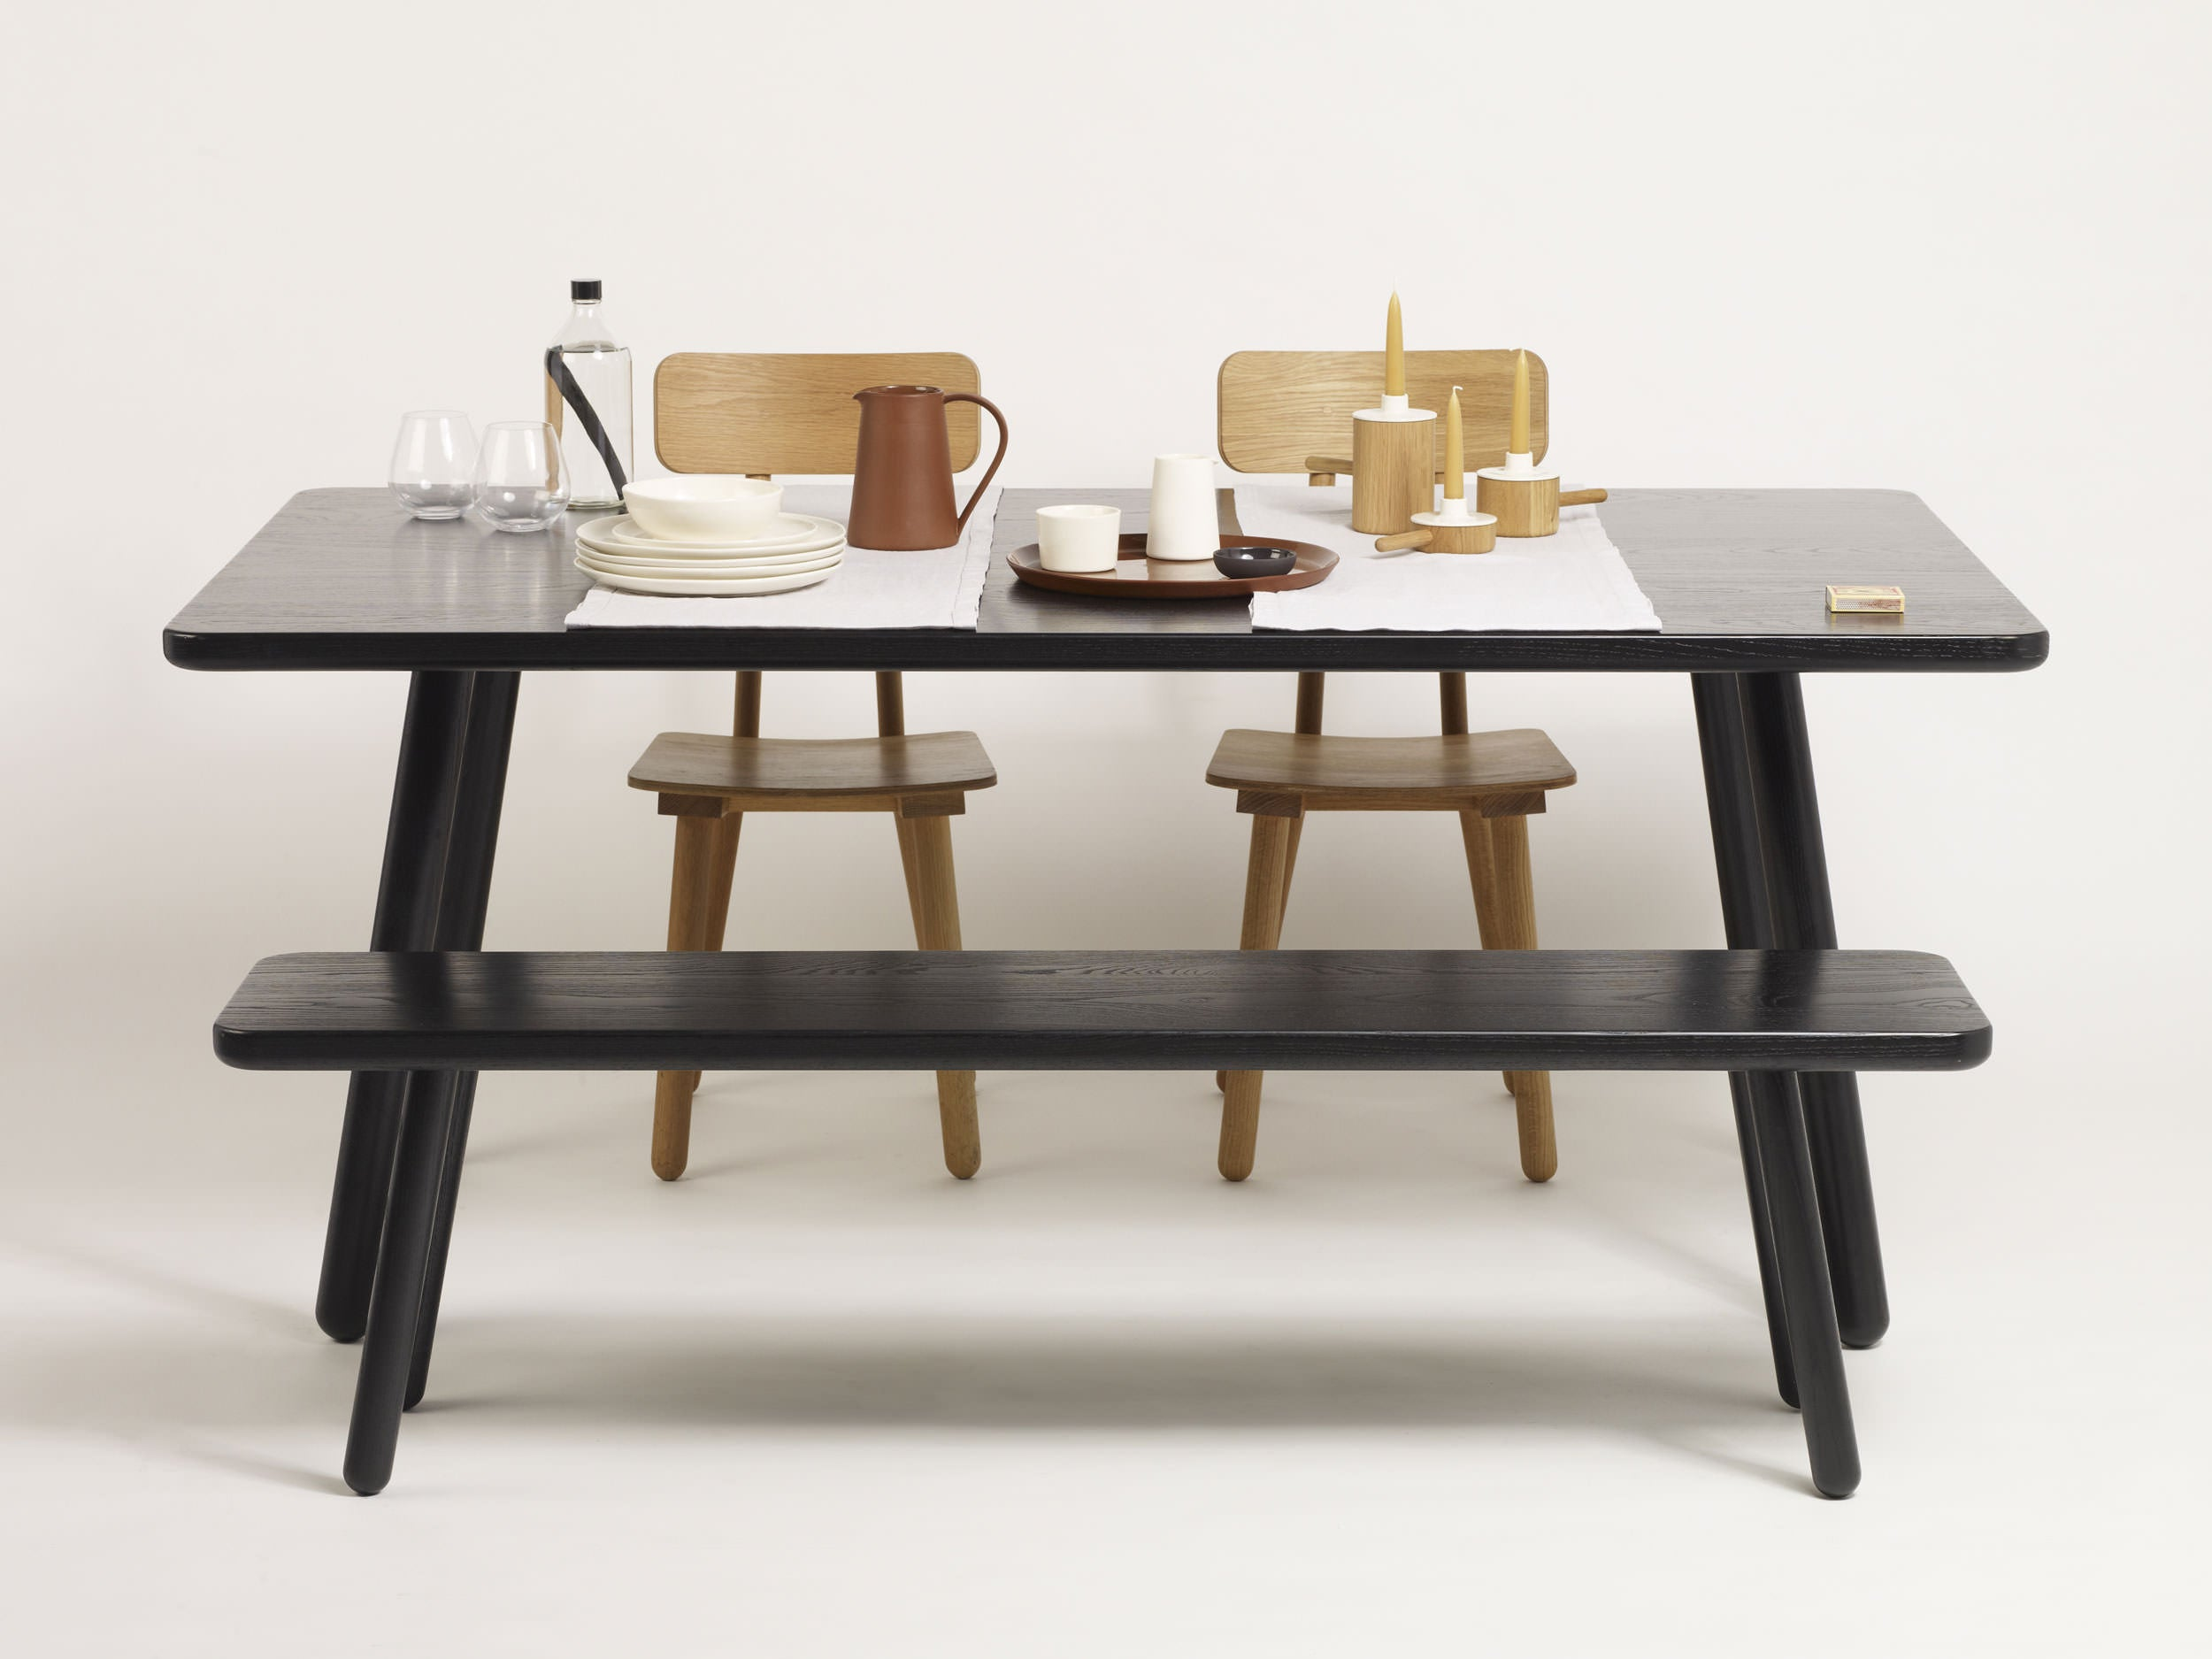 Contemporary Craft Dining Tables, Consoles, Coffee & Side Tables